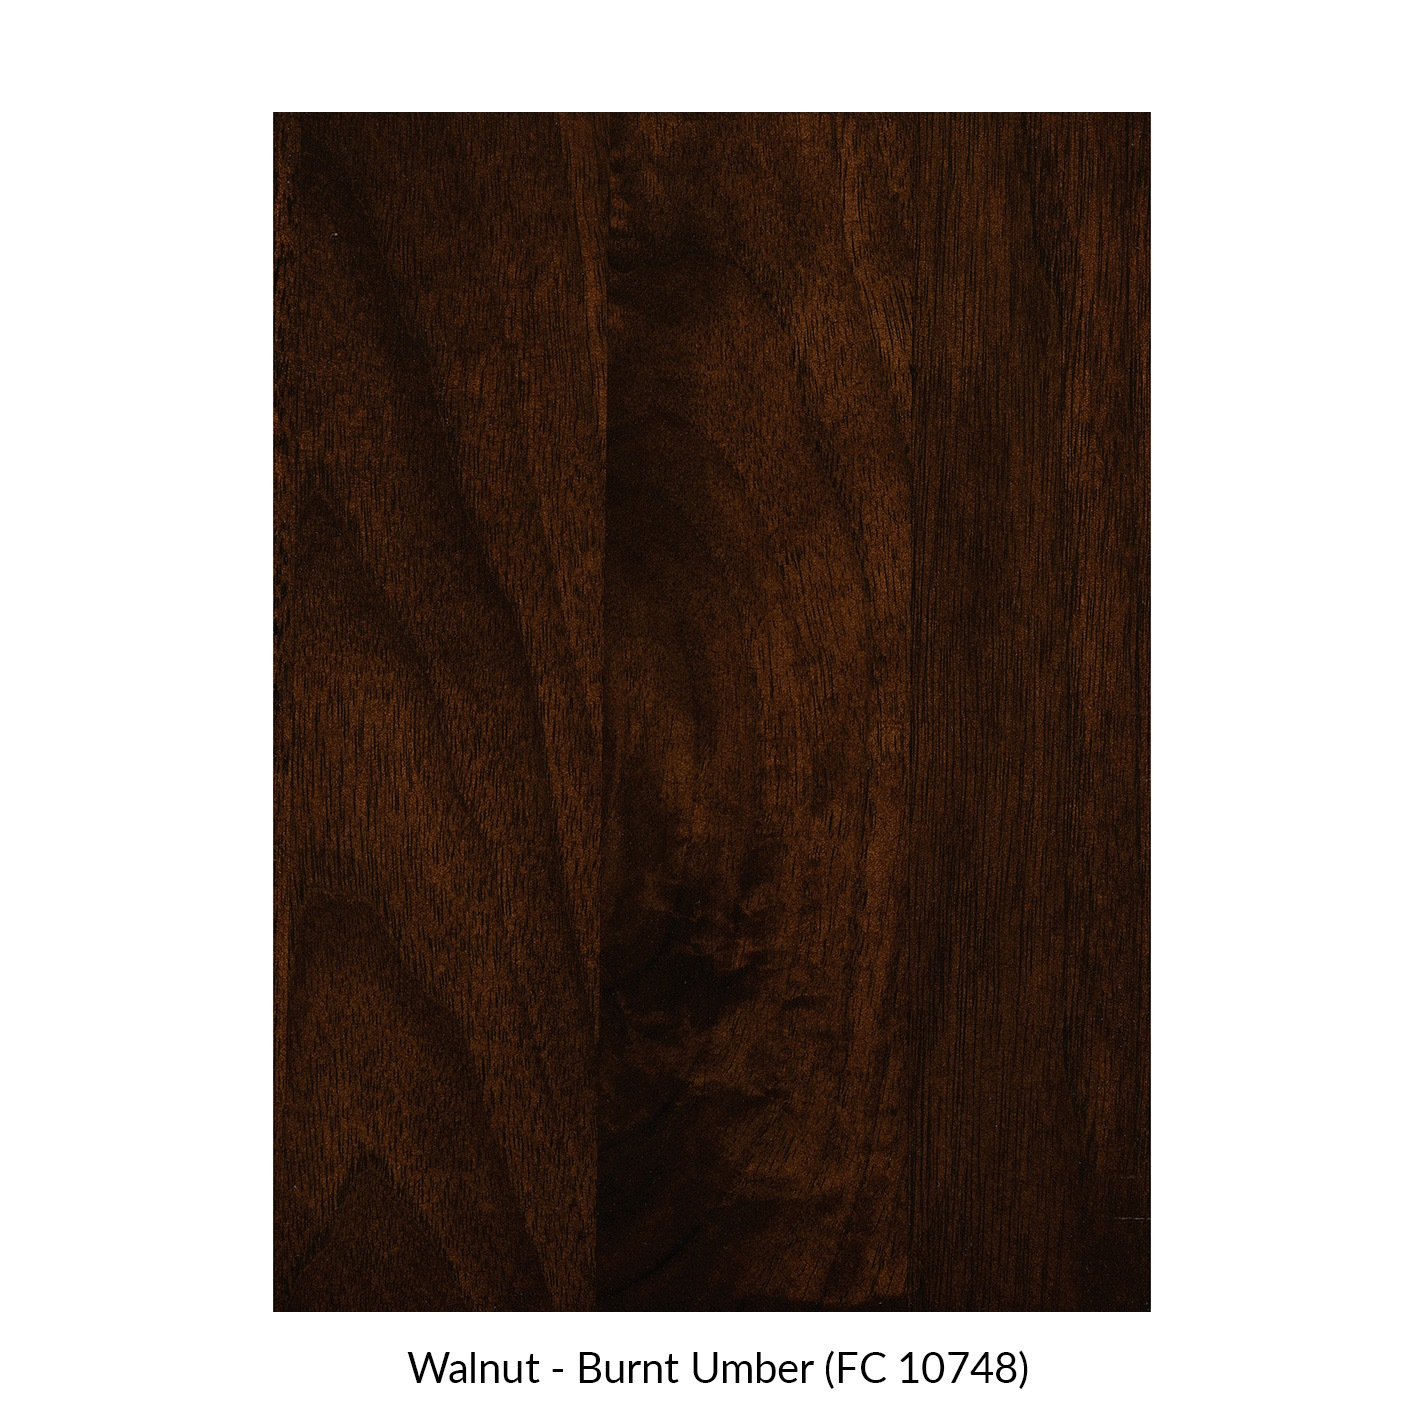 spectrum-walnut-burnt-umber-fc-10748.jpg